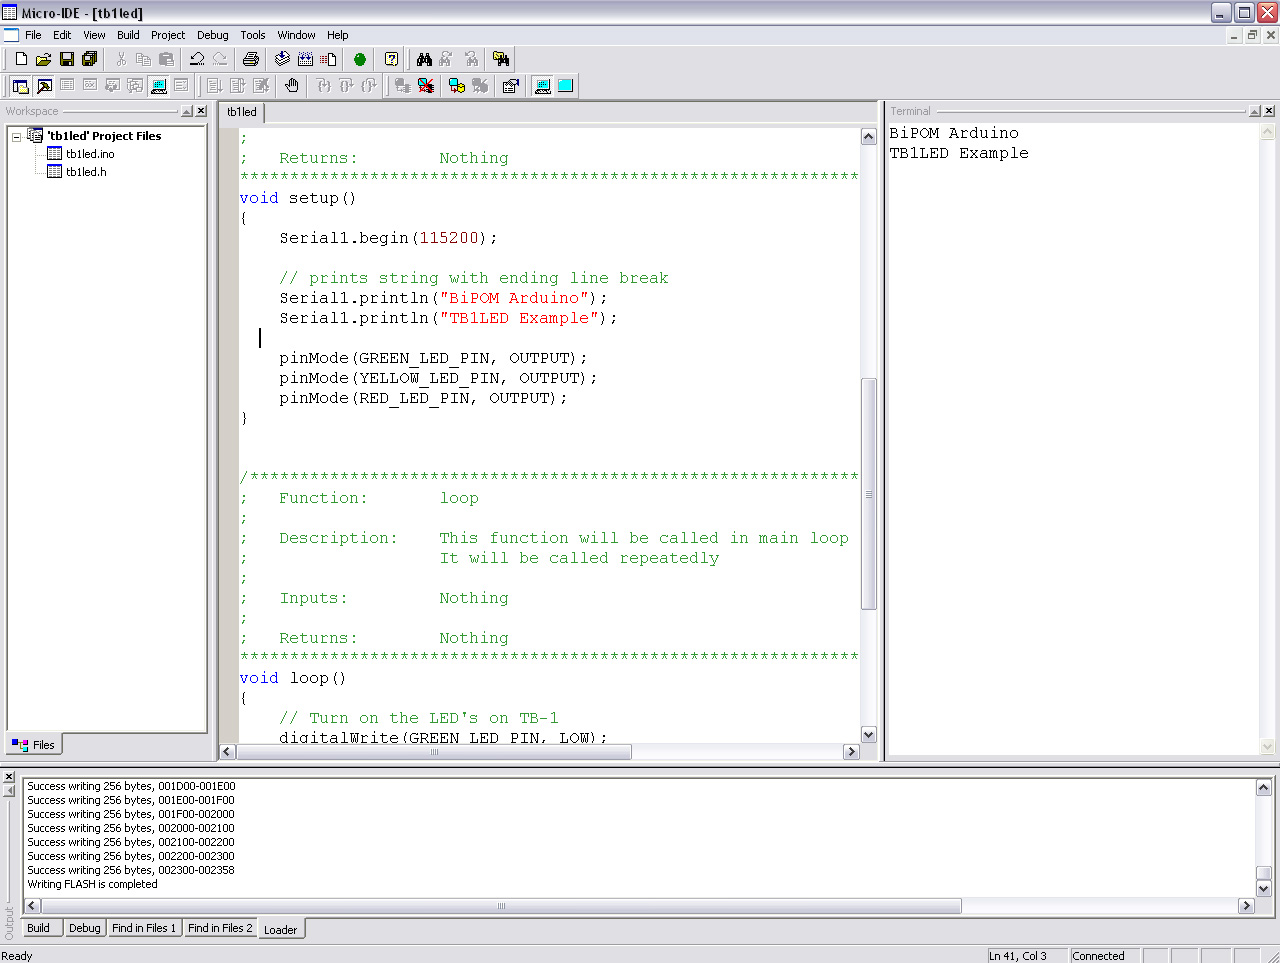 Terminal window in Micro-IDE when TB1LED example is running